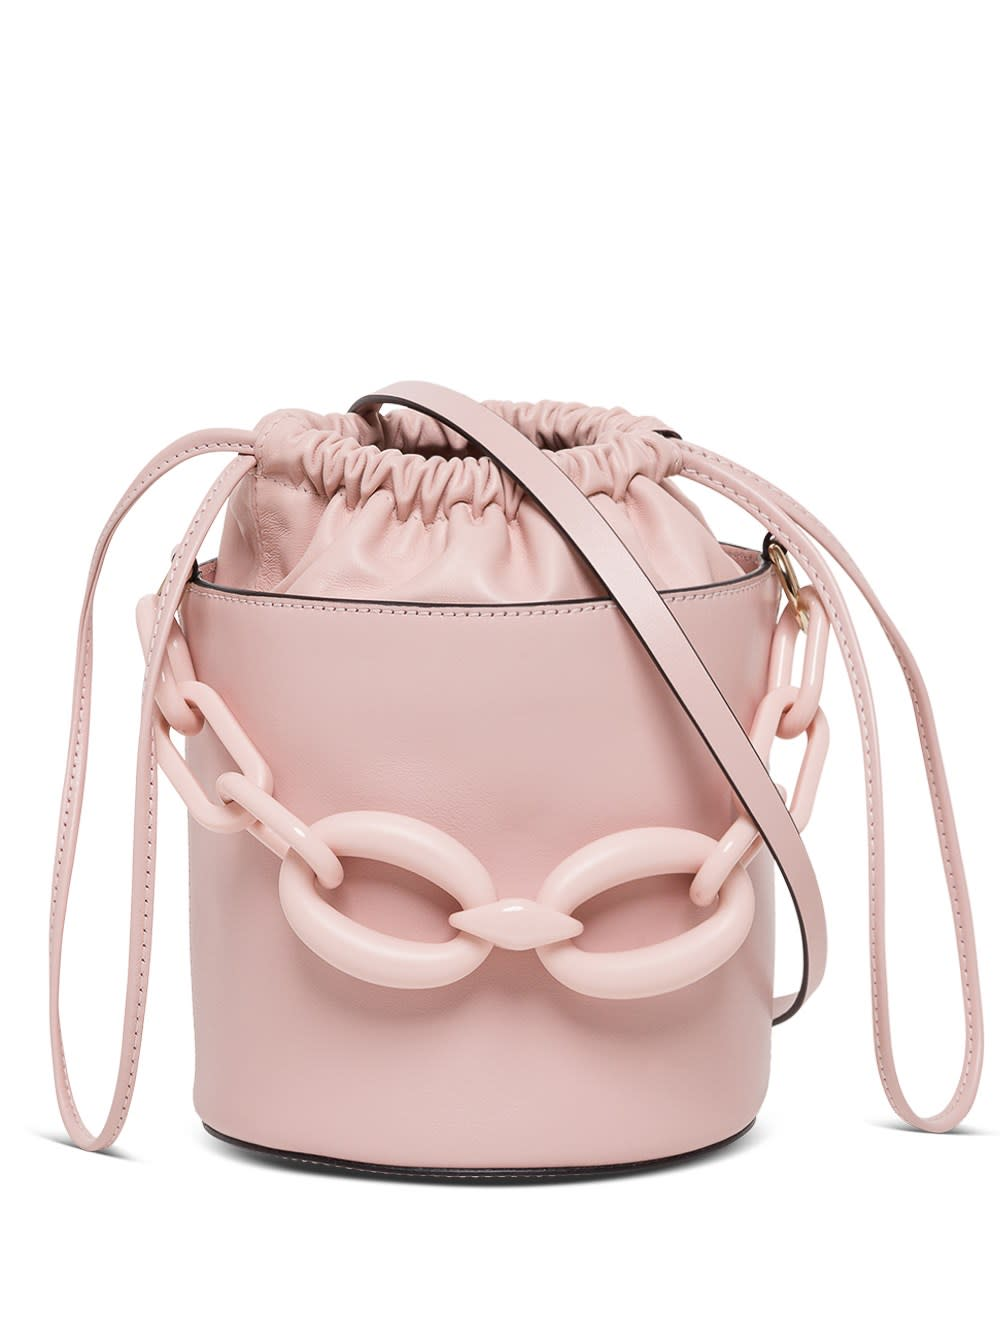 Red Valentino PINK LEATHER BUCKET BAG WITH RESIN CHAINI DETAIL